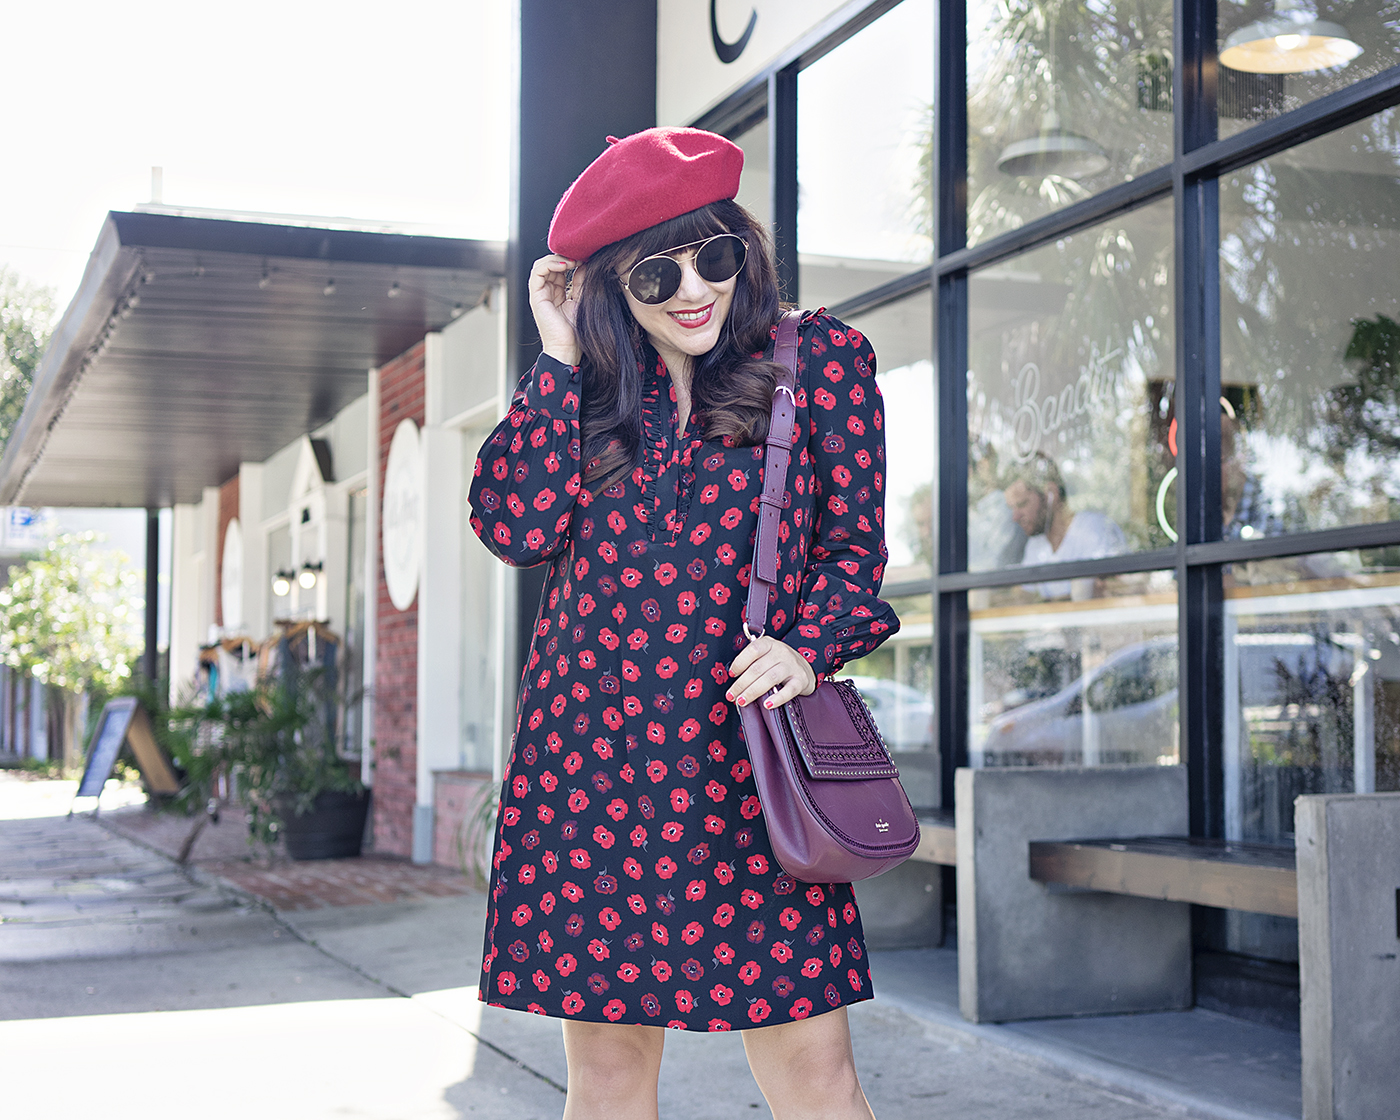 Beret for Fall!